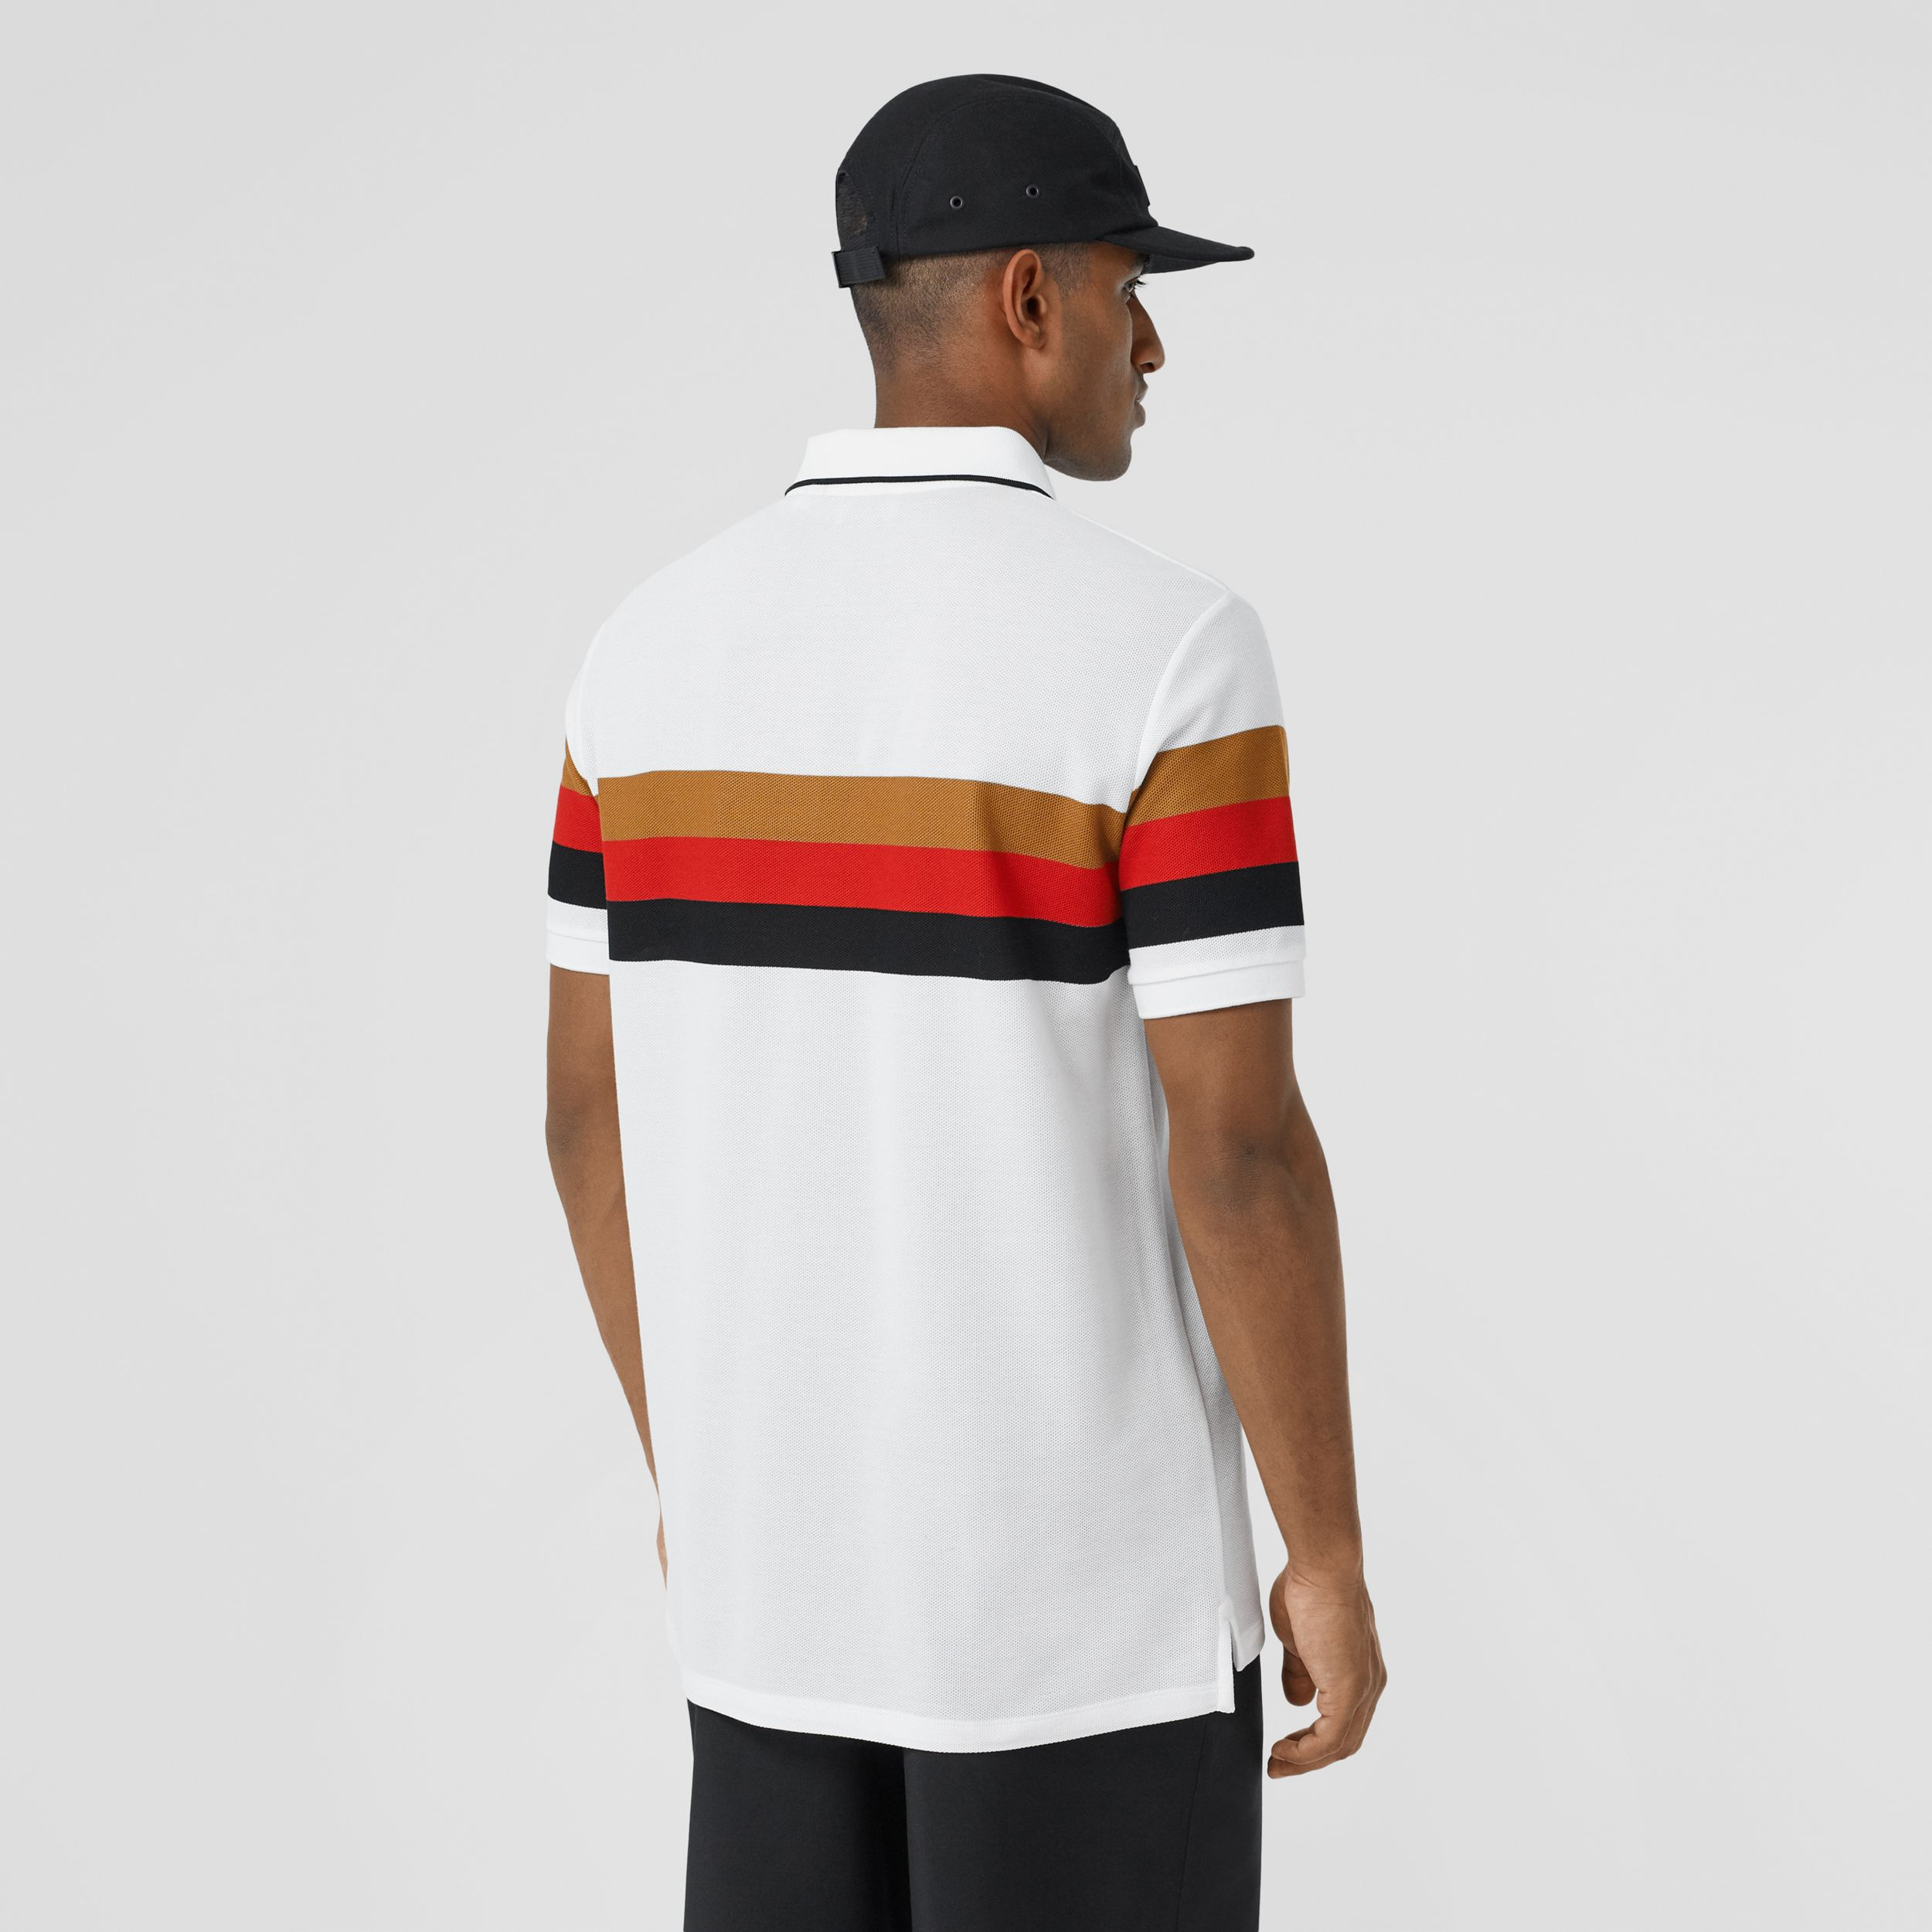 Monogram Motif Striped Cotton Polo Shirt in White - Men | Burberry - 3